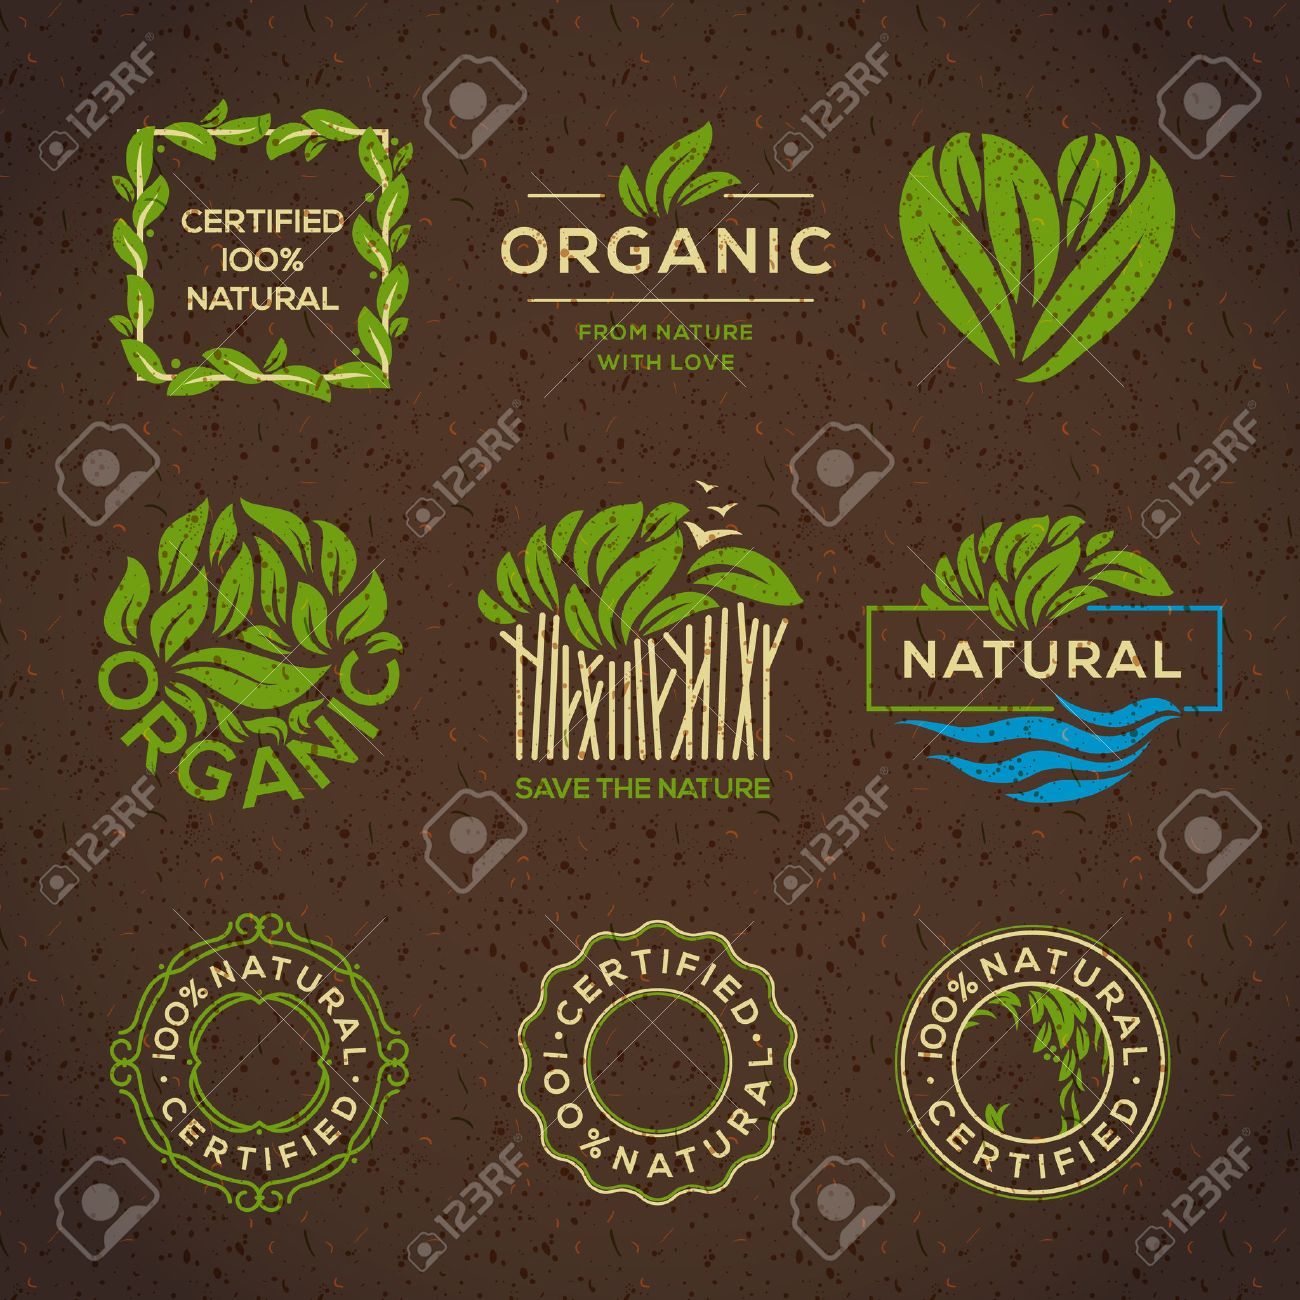 Organic food labels and elements, set for food and drink, restaurants and organic products vector illustration. Standard-Bild - 37153868